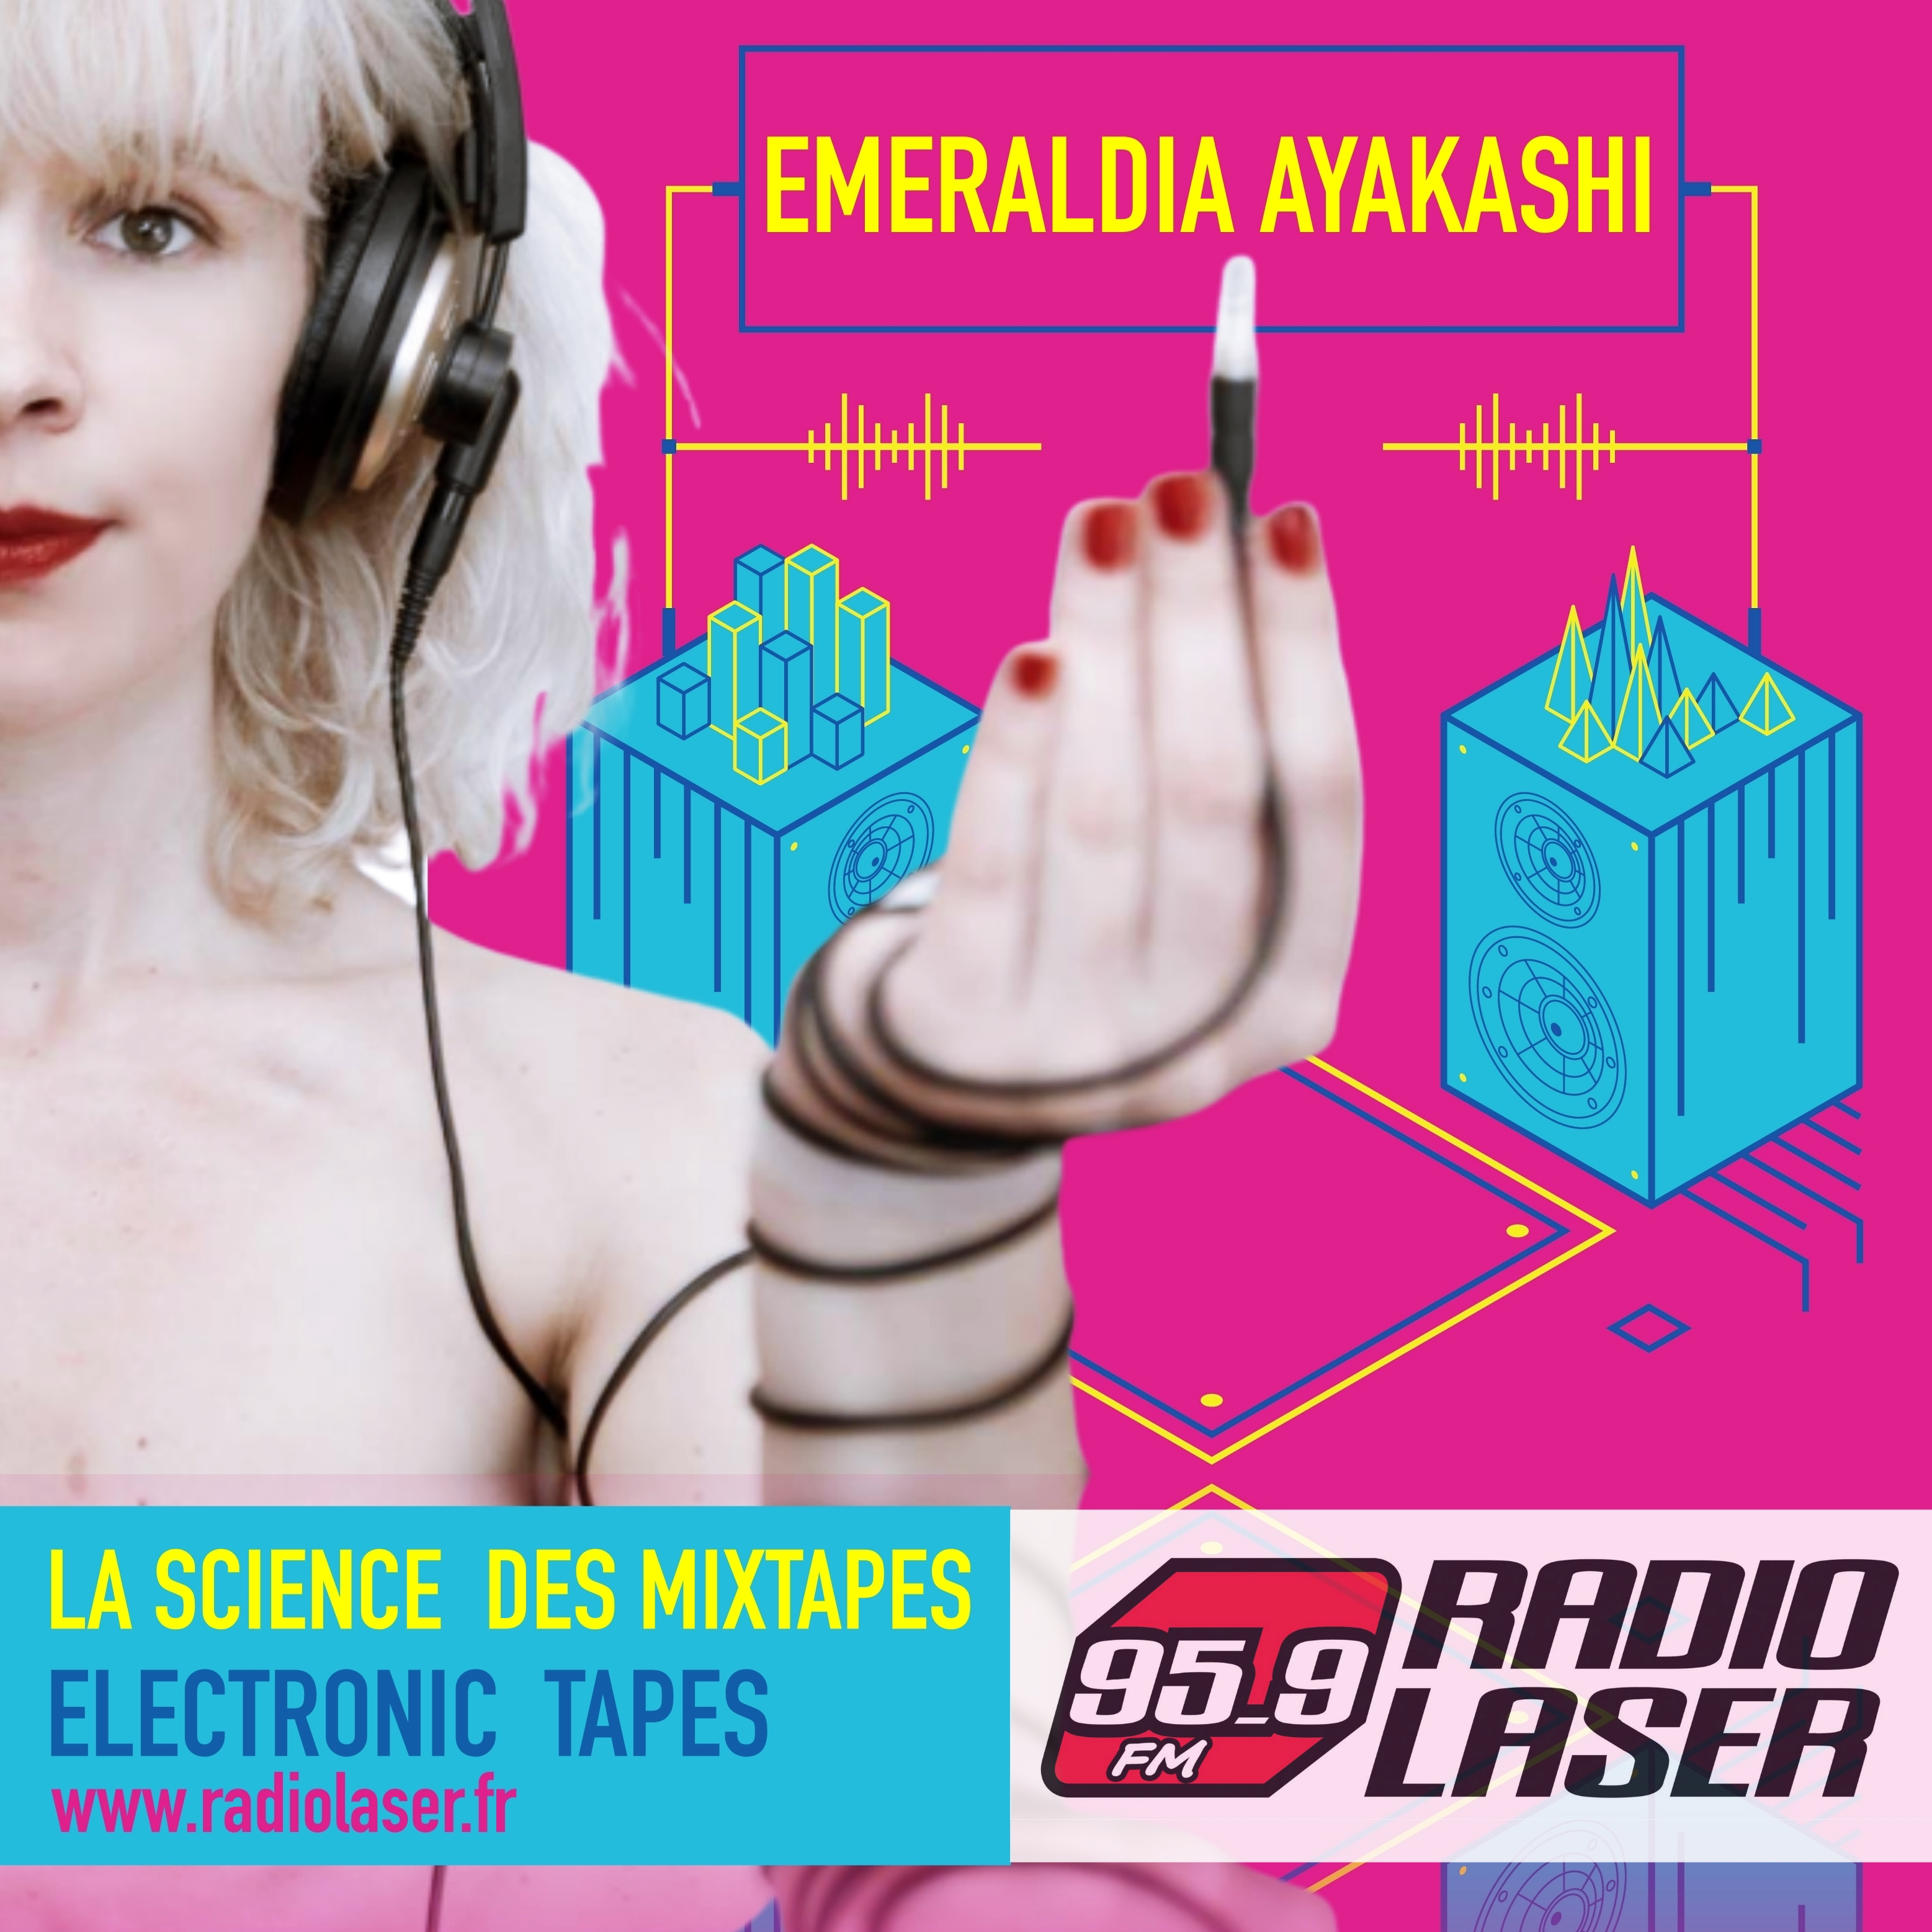 La Science des Mixtapes #8 mixée par Emeraldia Ayakashi